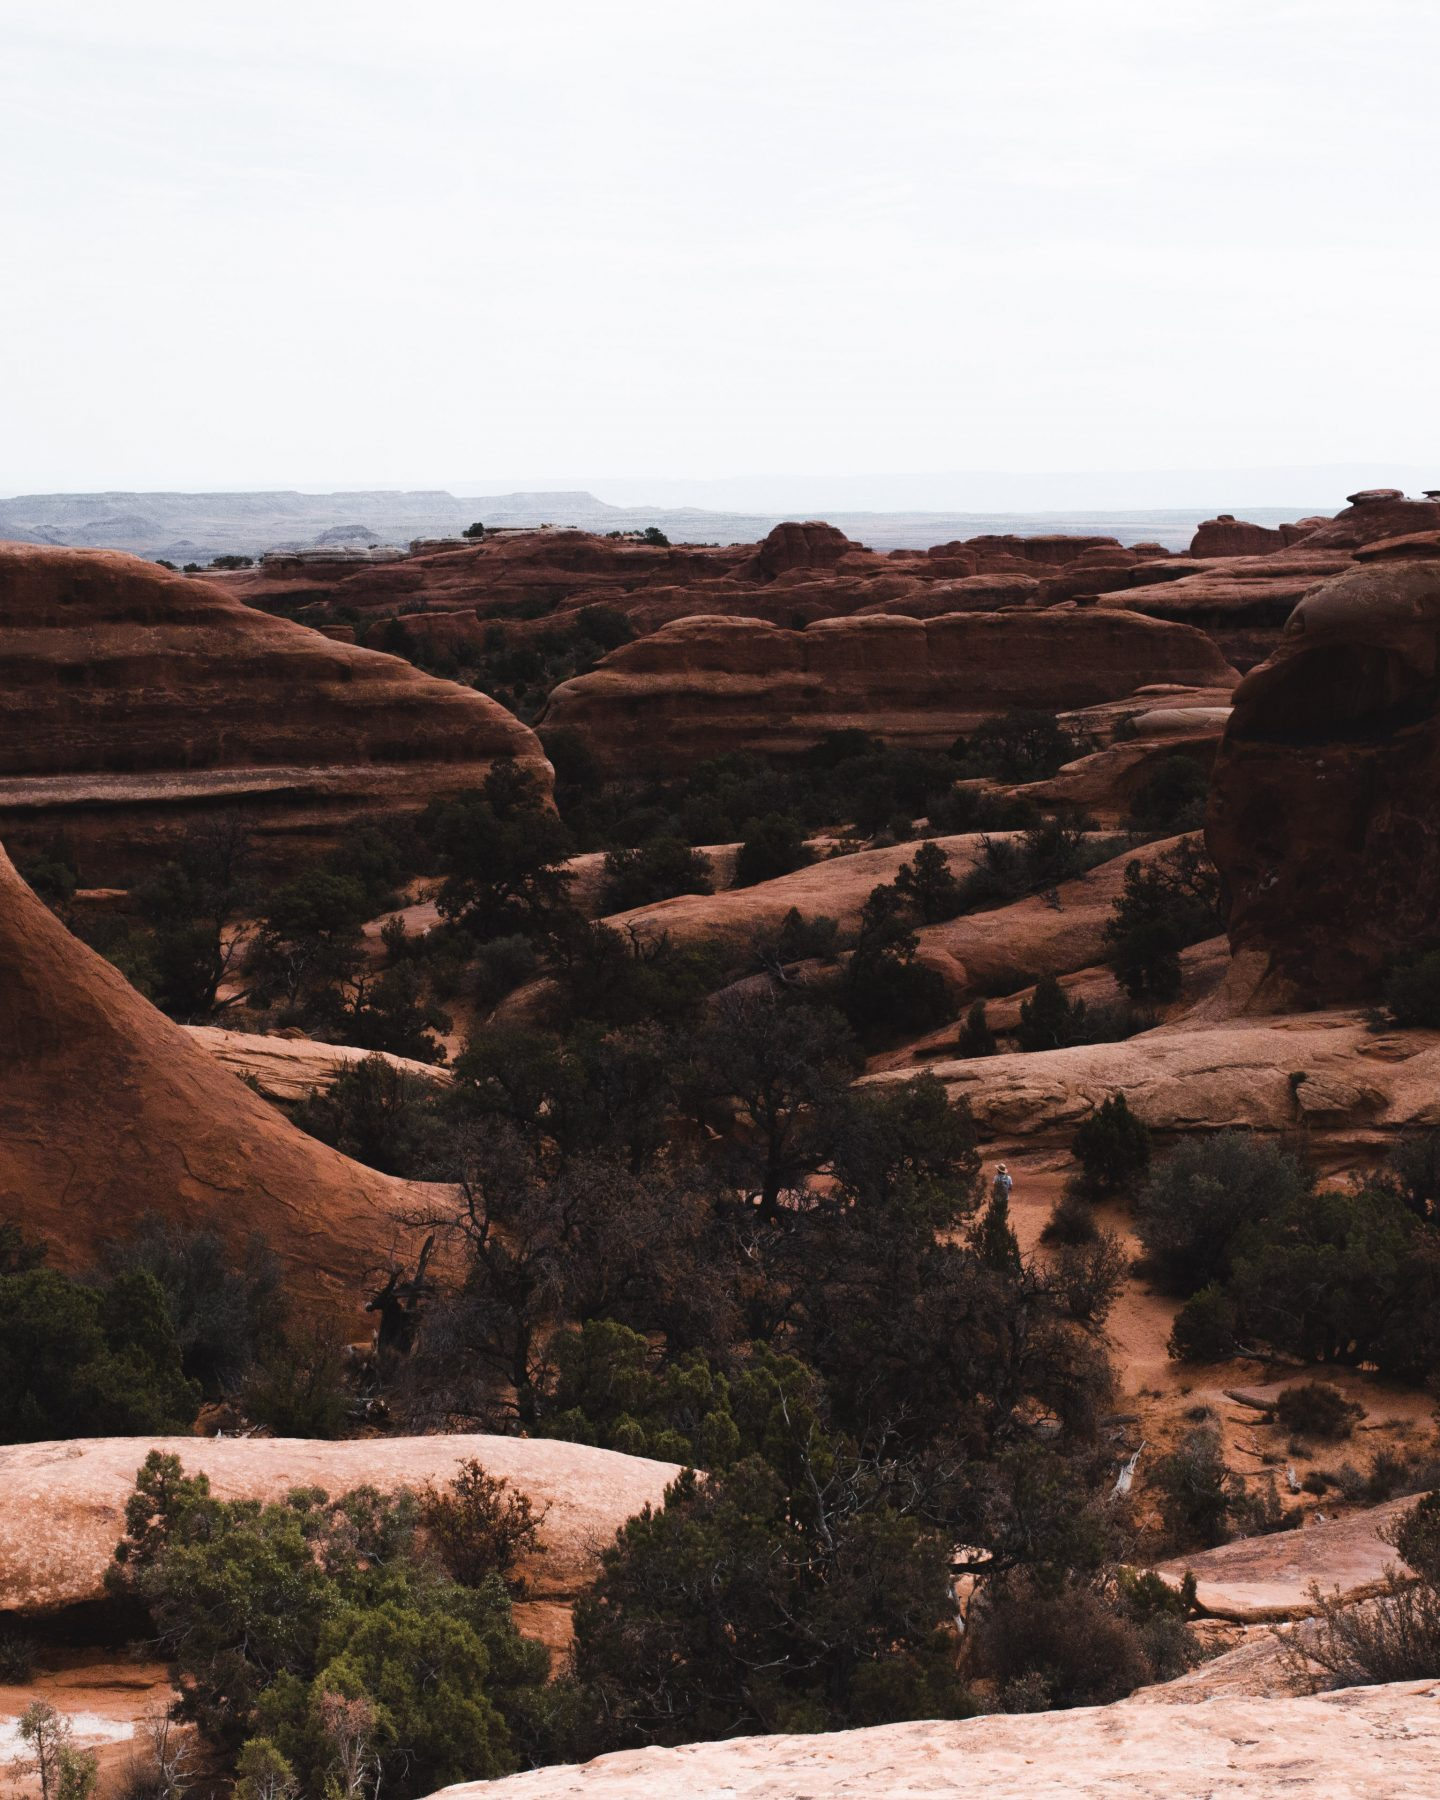 Arches National Park is one of the most beautiful National Parks in Utah, and with hikes like these, you can't help but want to pay this vast desert a visit. I have explored every inch of this park, so these top Arches National Park hikes are THE trails you don't want to miss while on a road trip through Utah! #archesnationalparkhikes #hikesinarchesnationalpark #archesnationalpark #utah #utahnationalparks